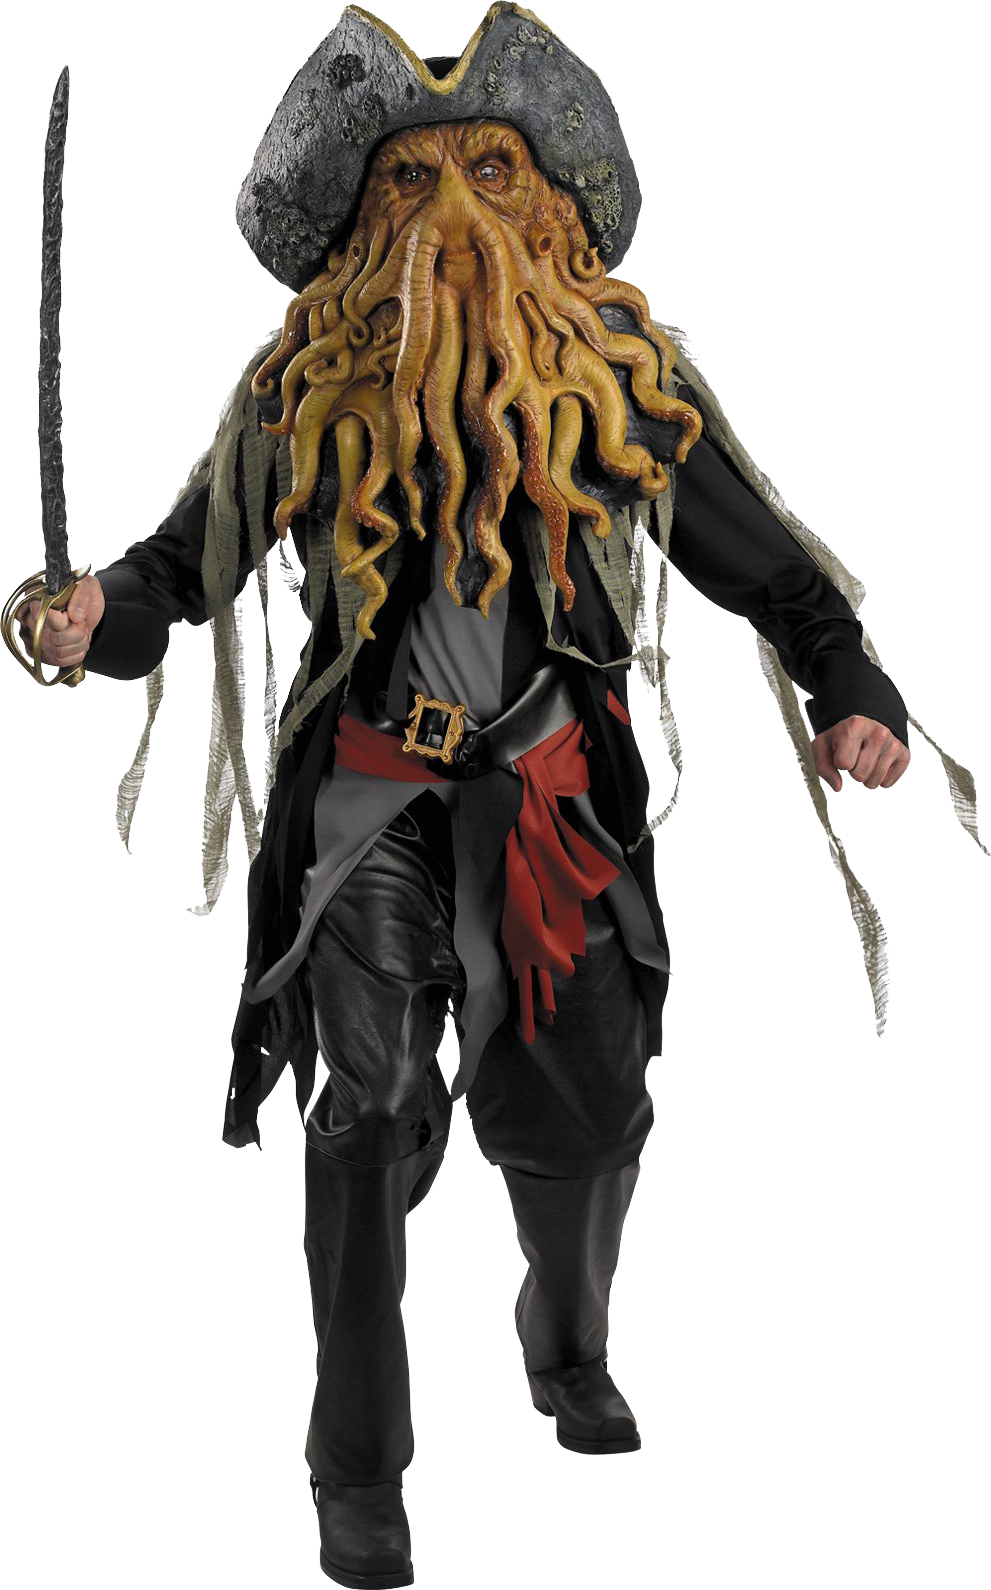 Now you can download Pirate PNG Picture